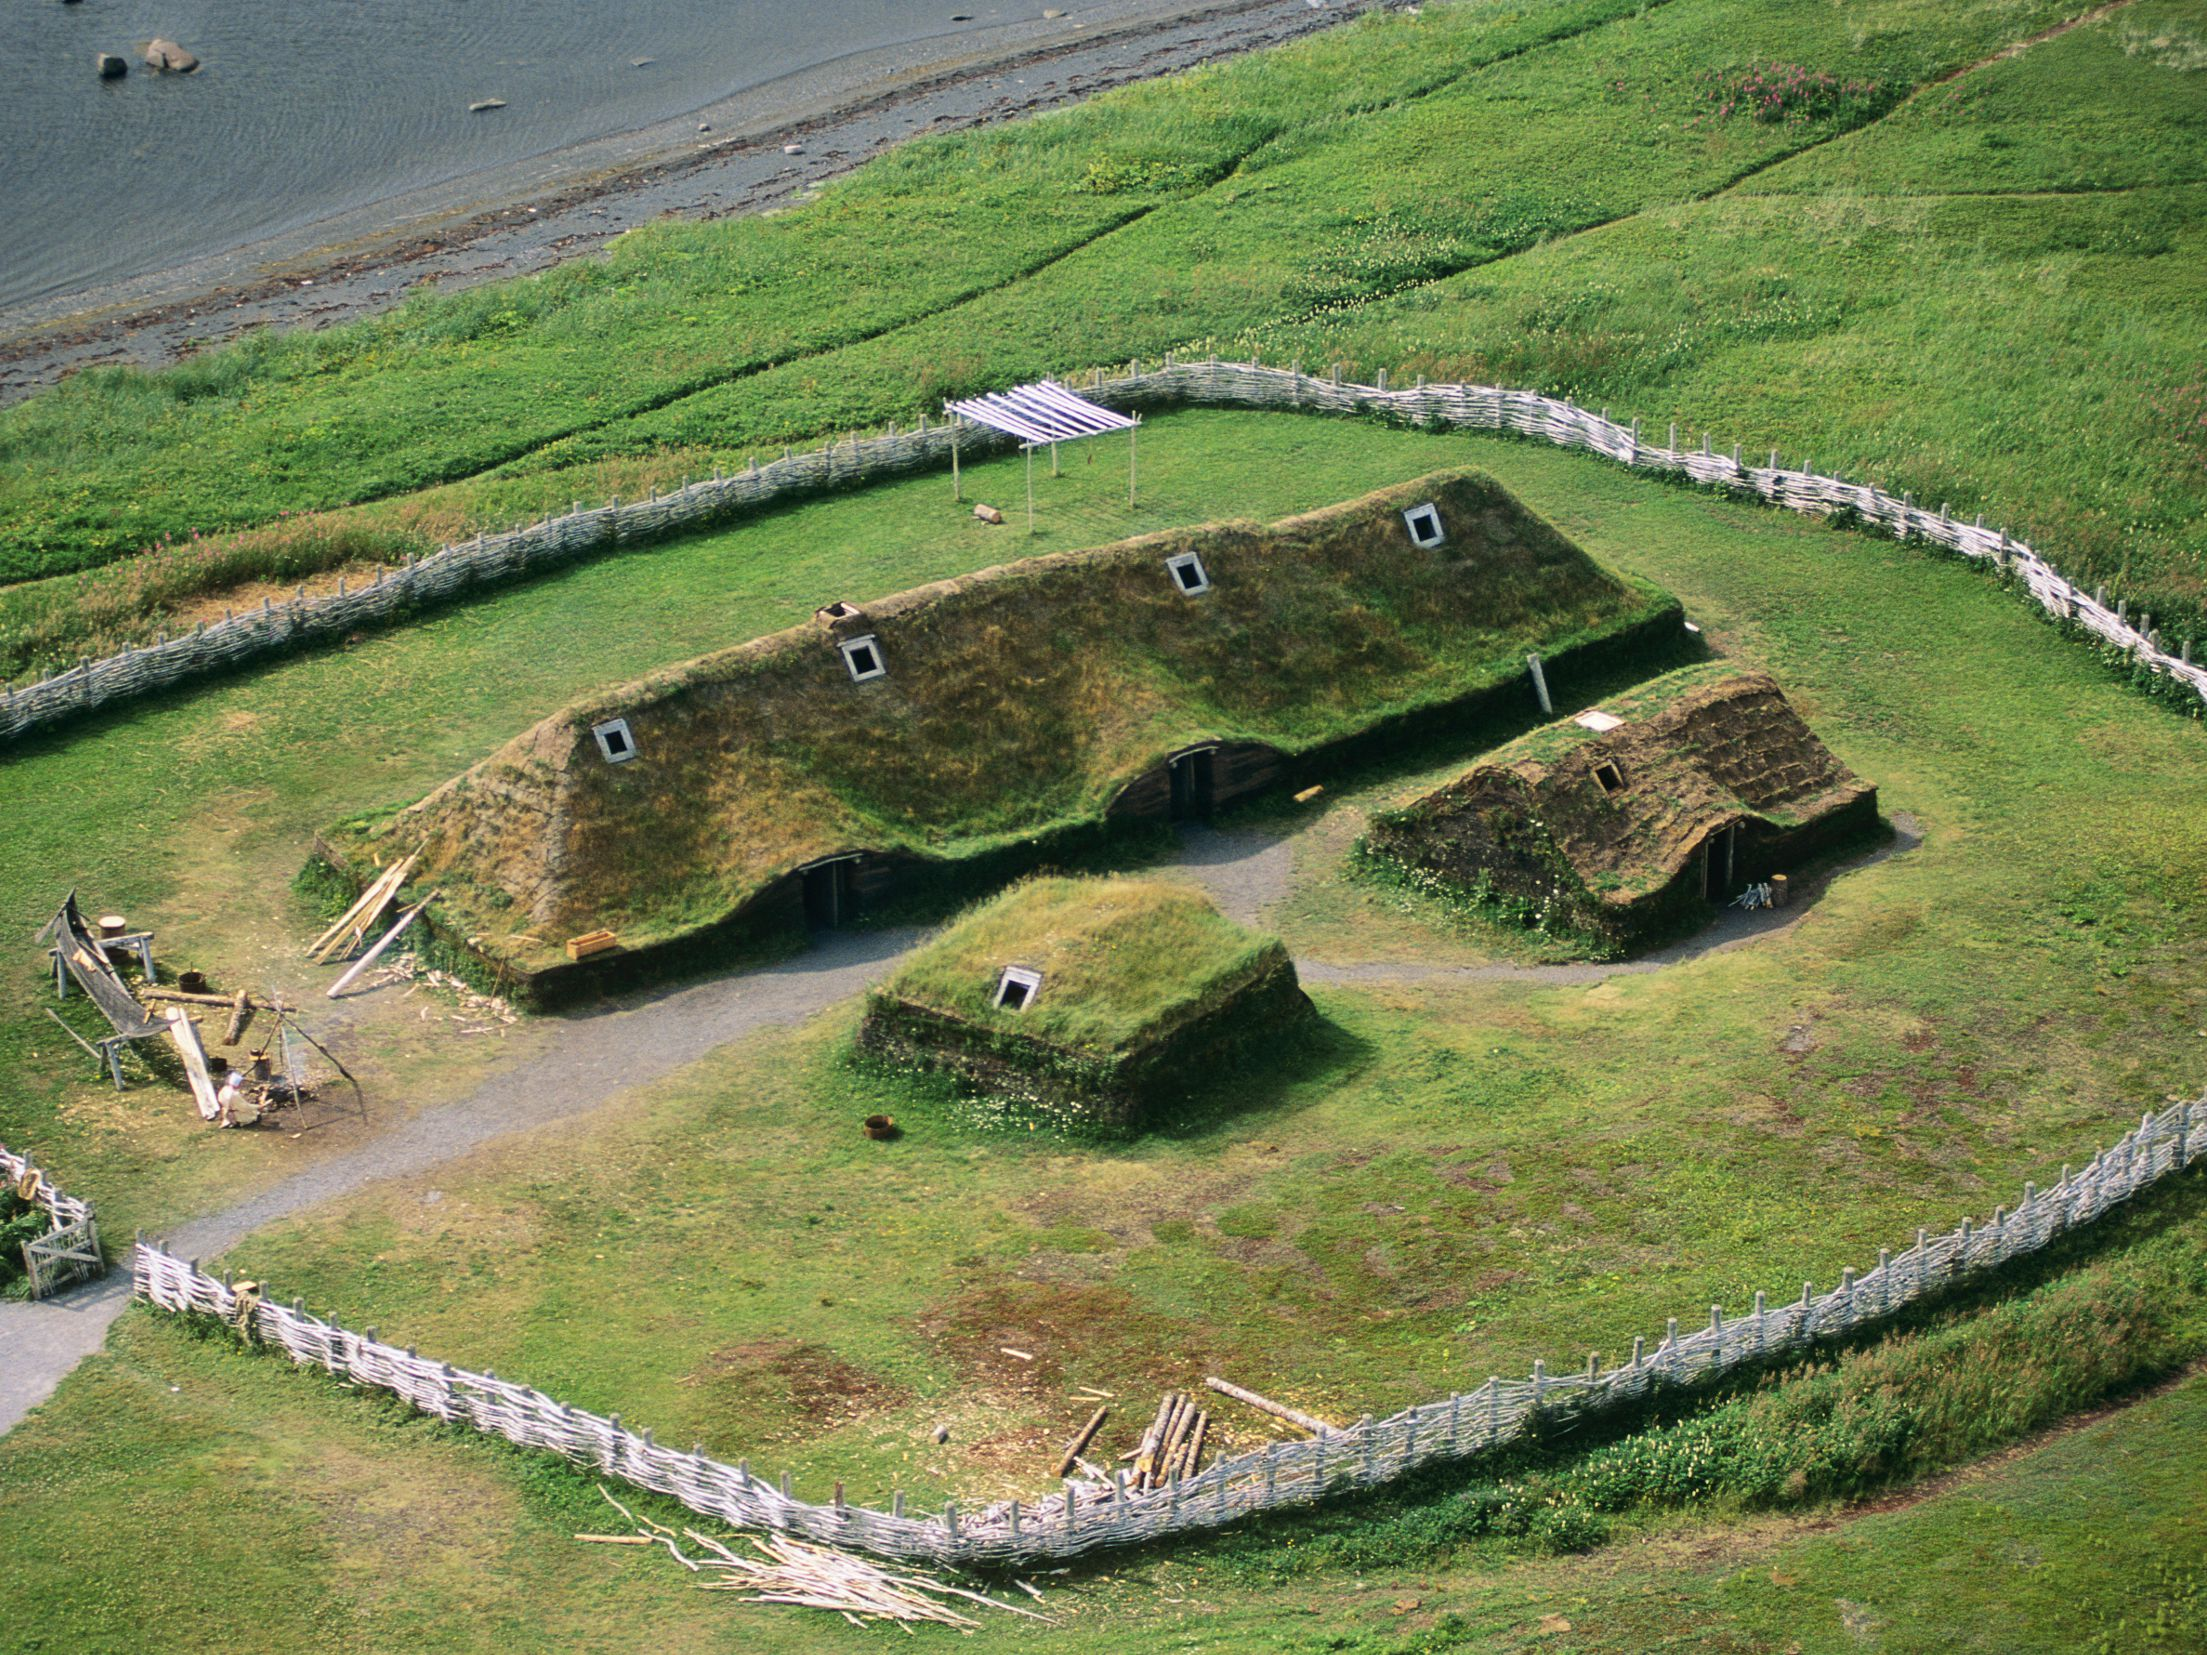 Vinland Very neat item First Map of Americas Discovered by Vikings